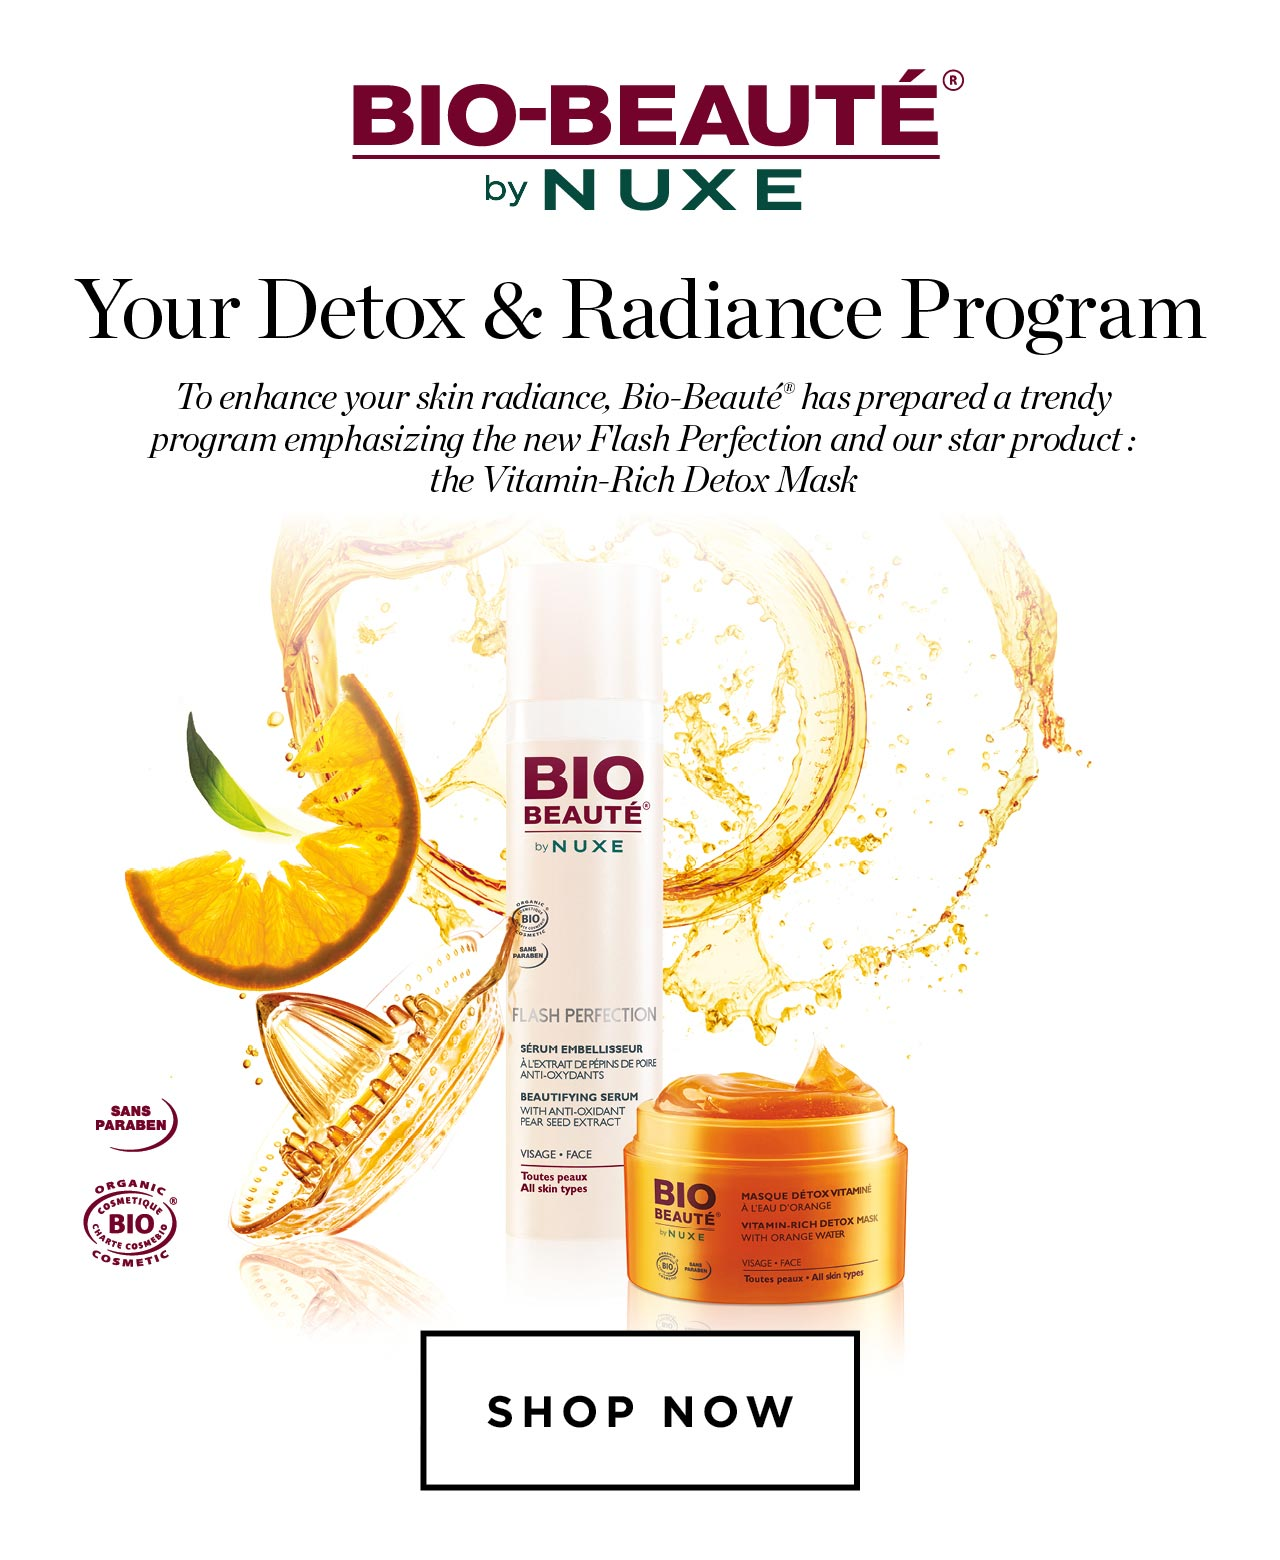 Your Detox & Radiance Program